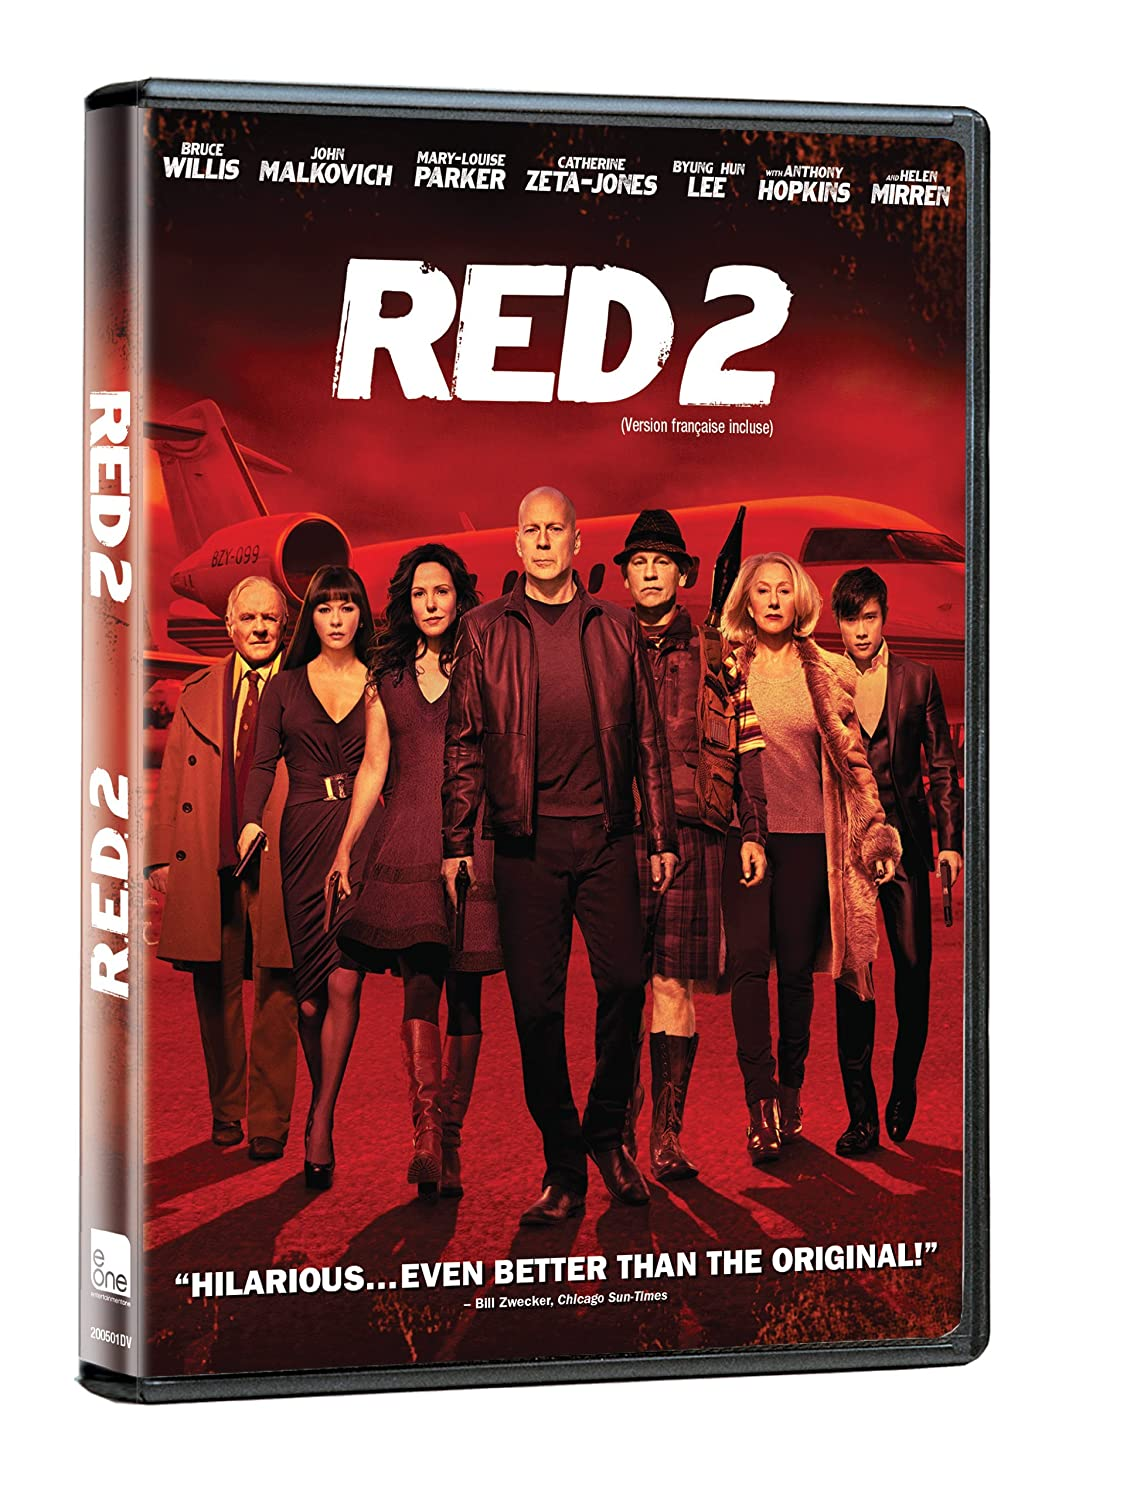 Red 2 (Bilingual) Bruce Willis Helen Mirren John Malkovich Catherine Zeta-Jones